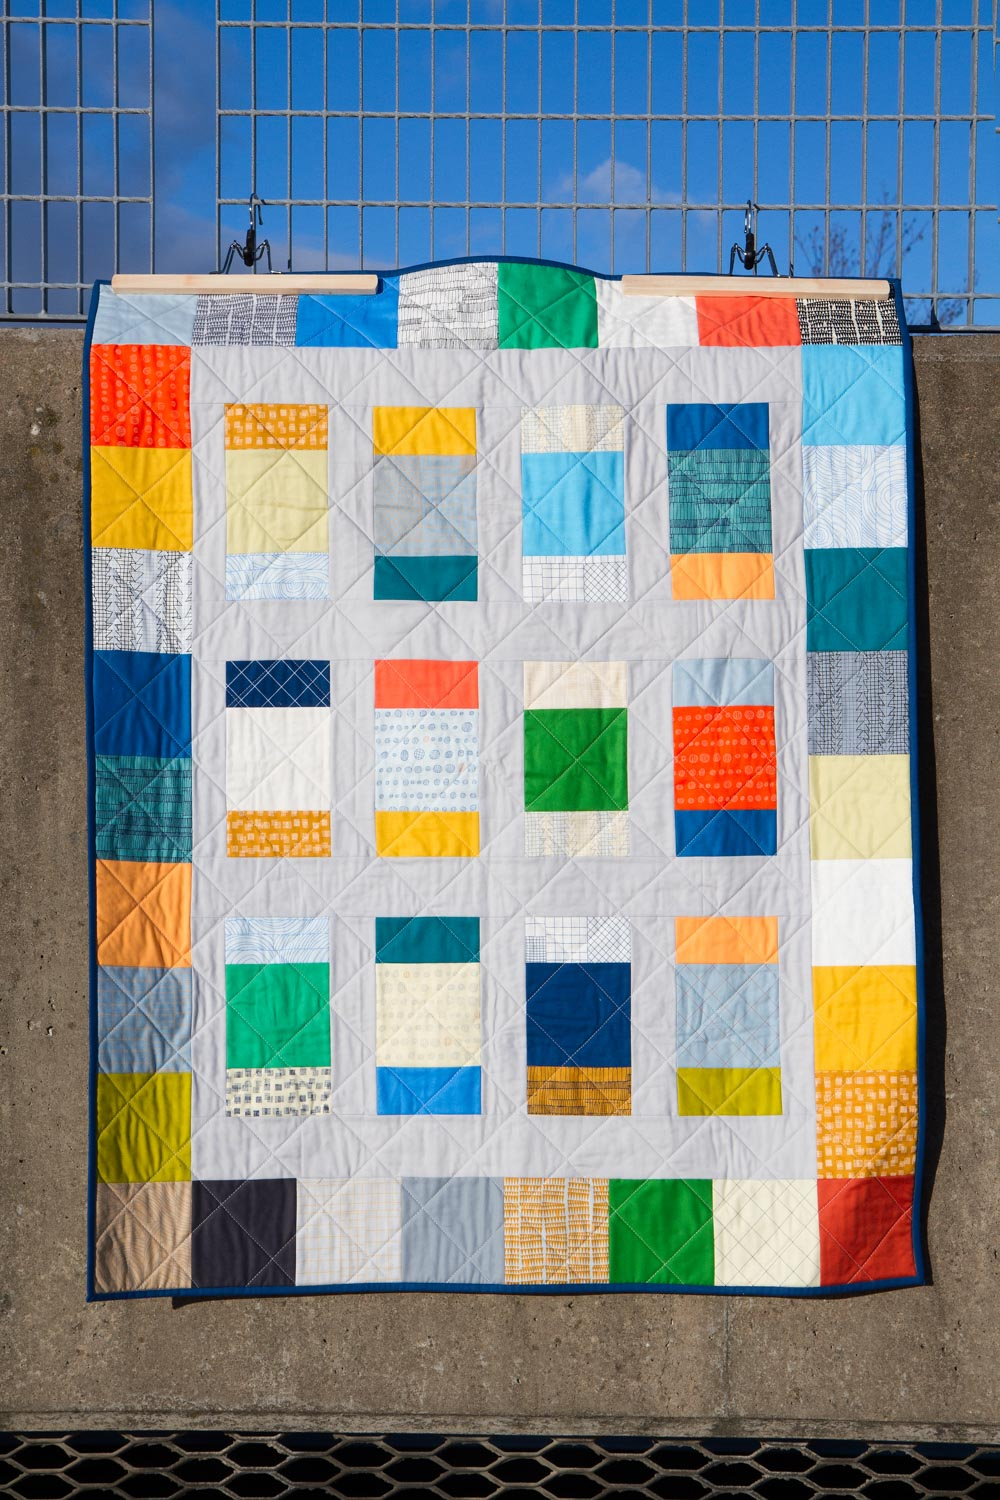 A Charm Box Quilt by Katy Cameron.